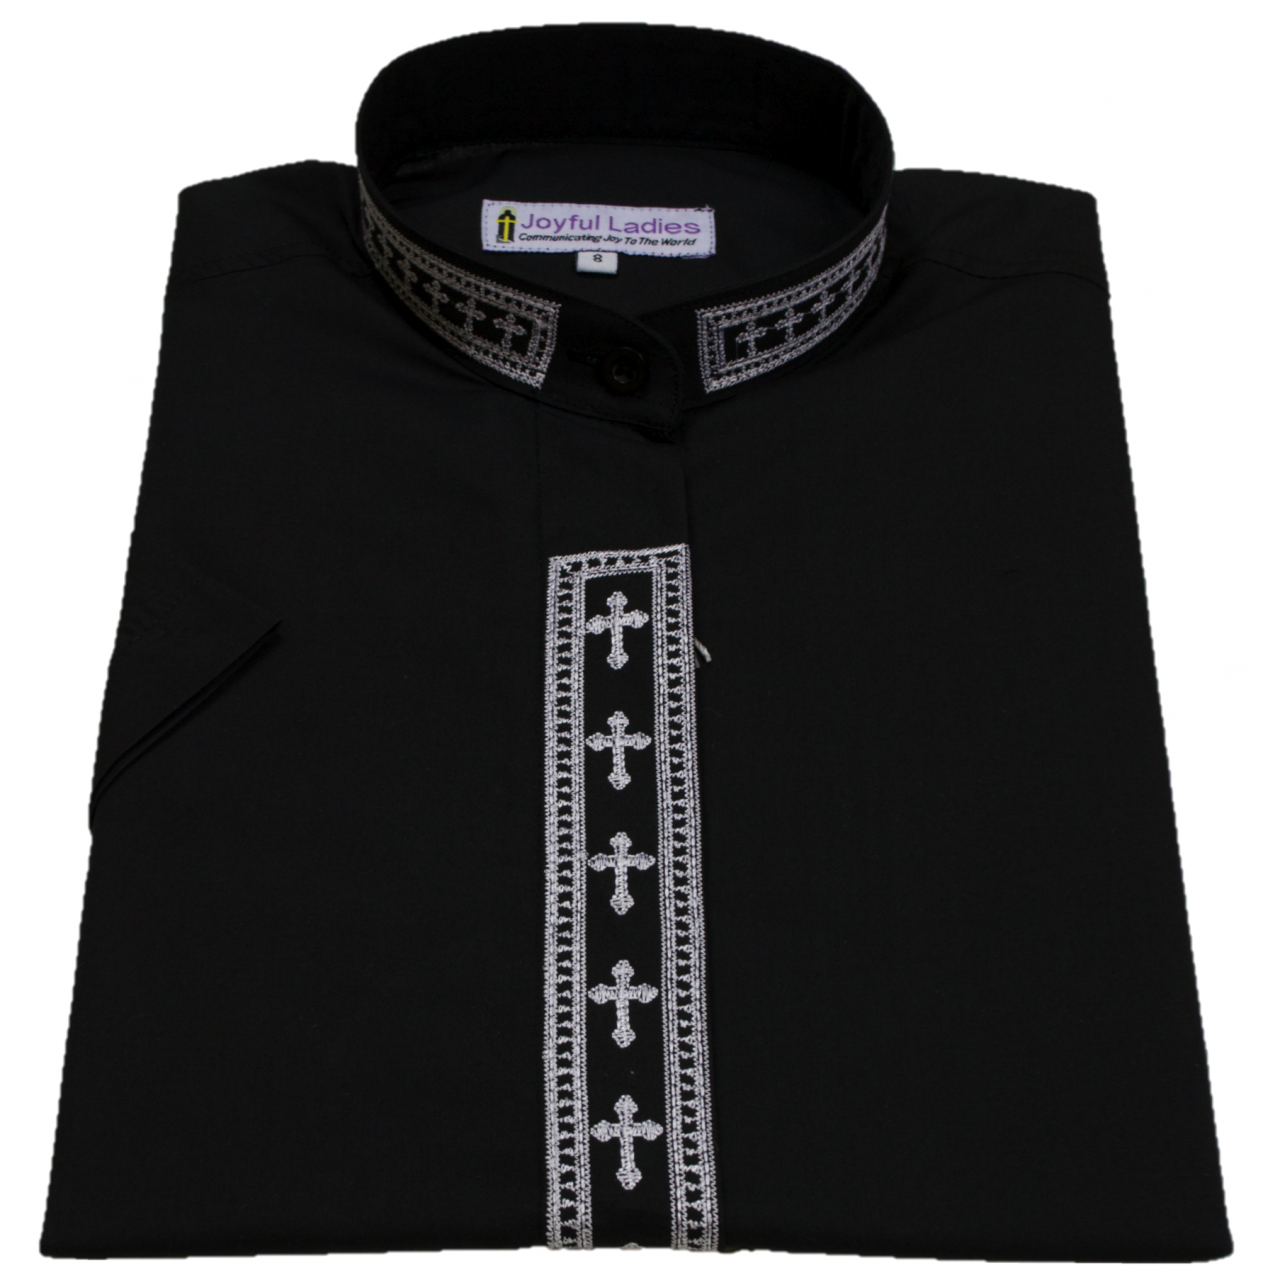 753. Women's Short-Sleeve Clergy Shirt With Fine Embroidery - Black/White